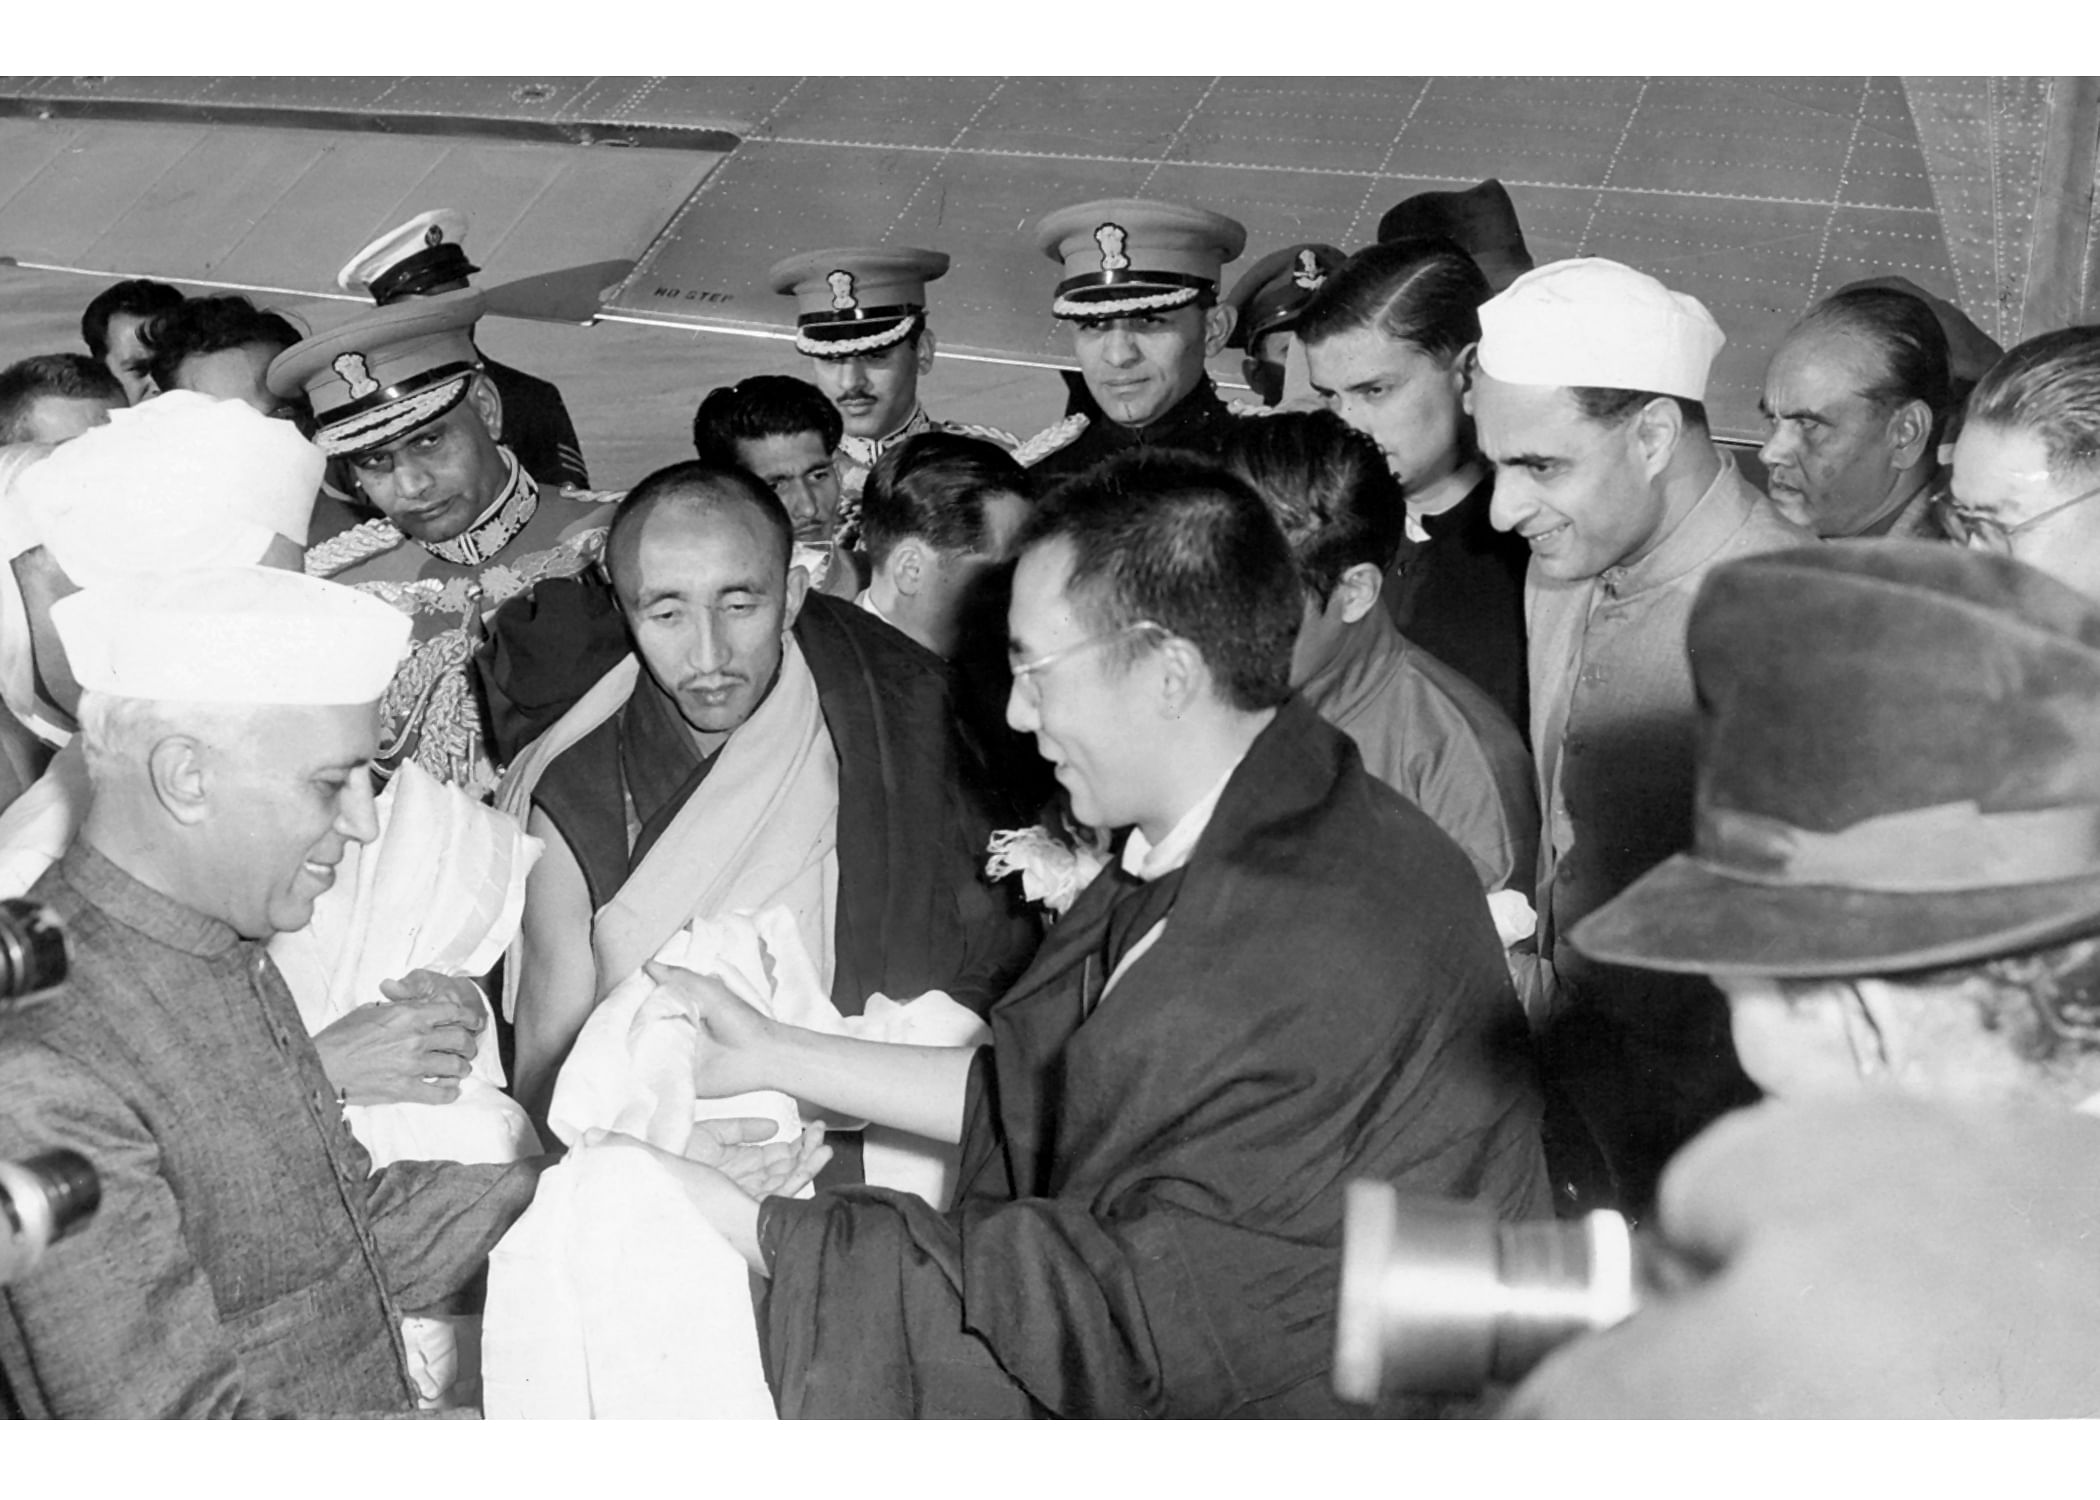 HH The 14th Dalai Lama being received at Palam by Indian dignitaries in Nov 1956.